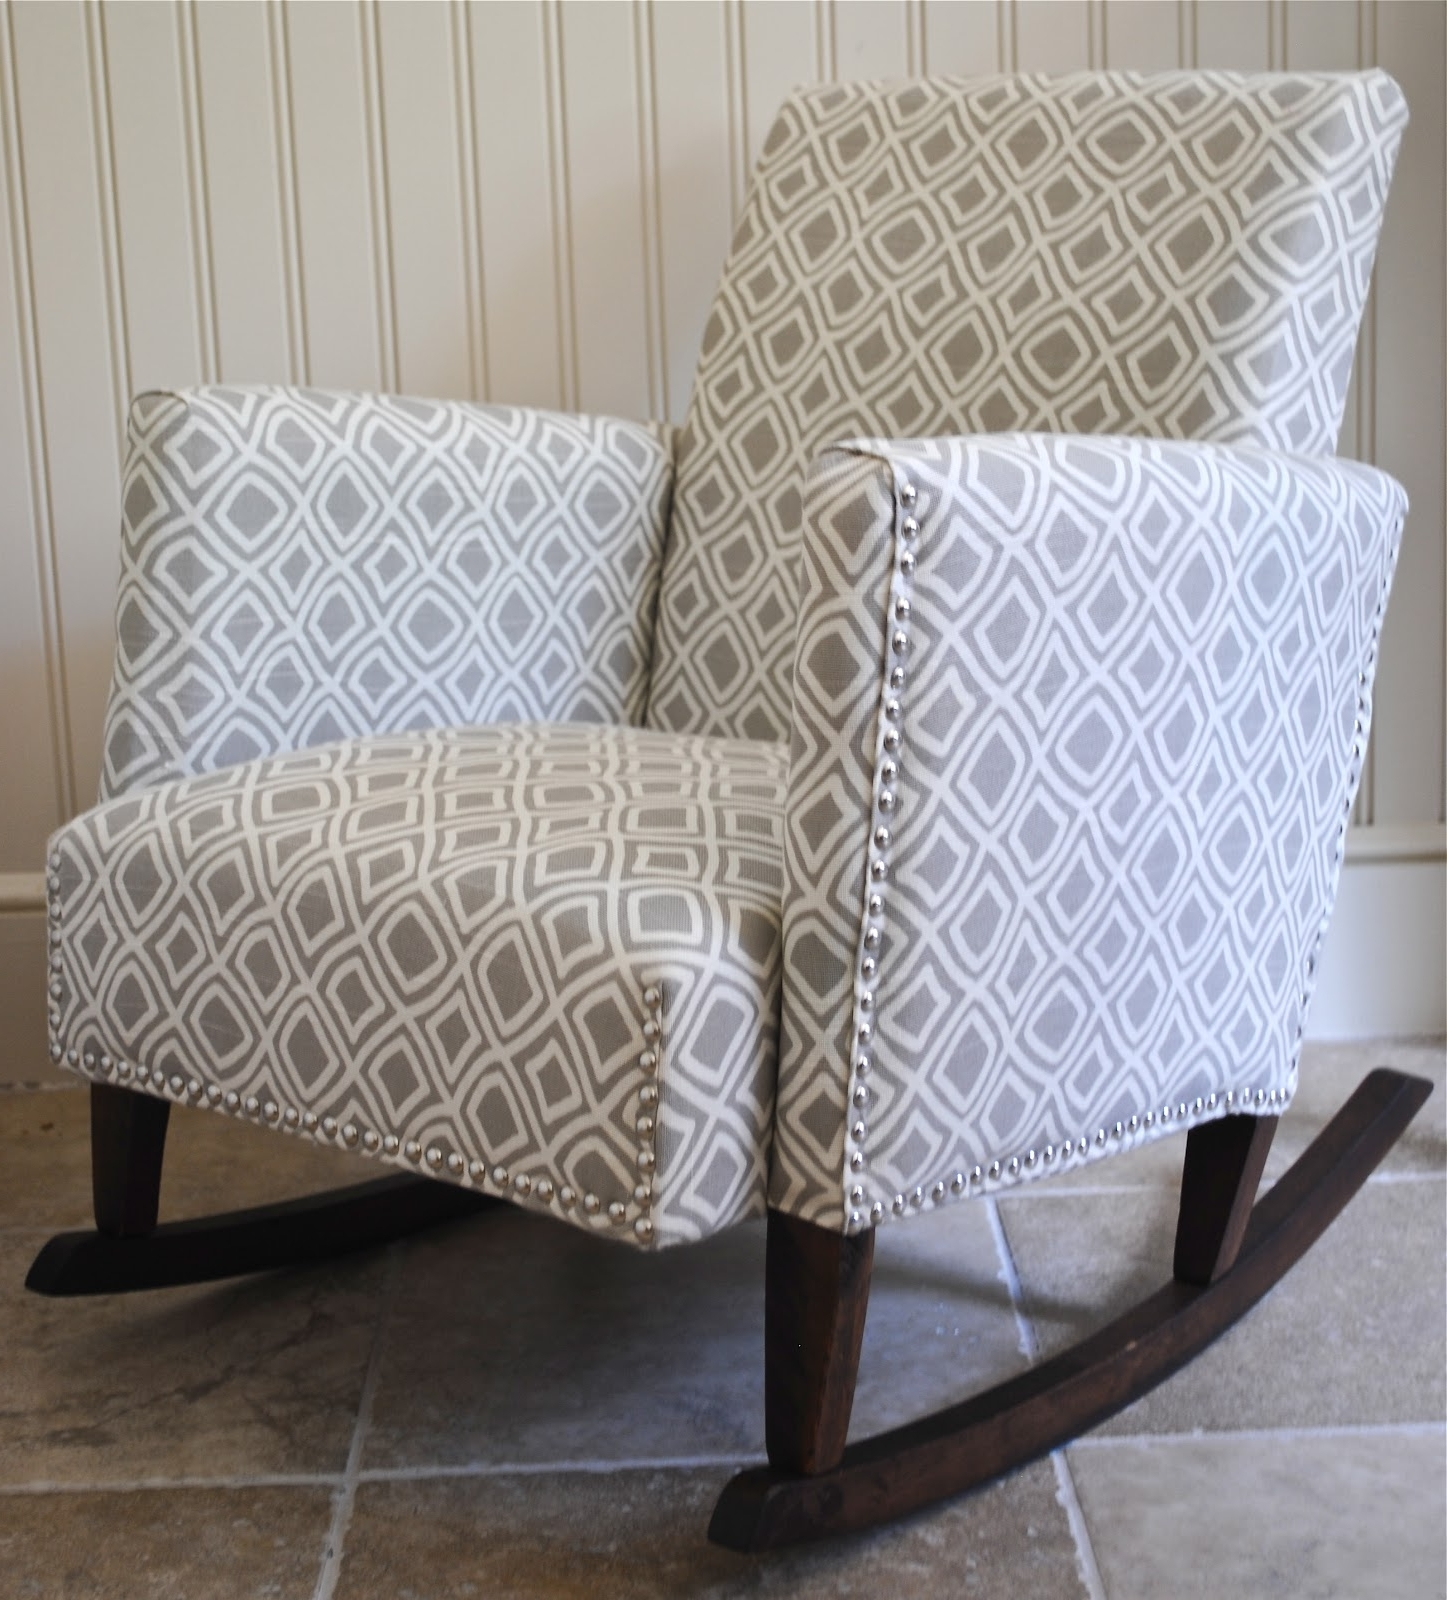 Popular Upholstered Rocking Chairs With Regard To Diy}Ish Upholstered Child's Rocking Chair – The Chronicles Of Home (View 8 of 15)